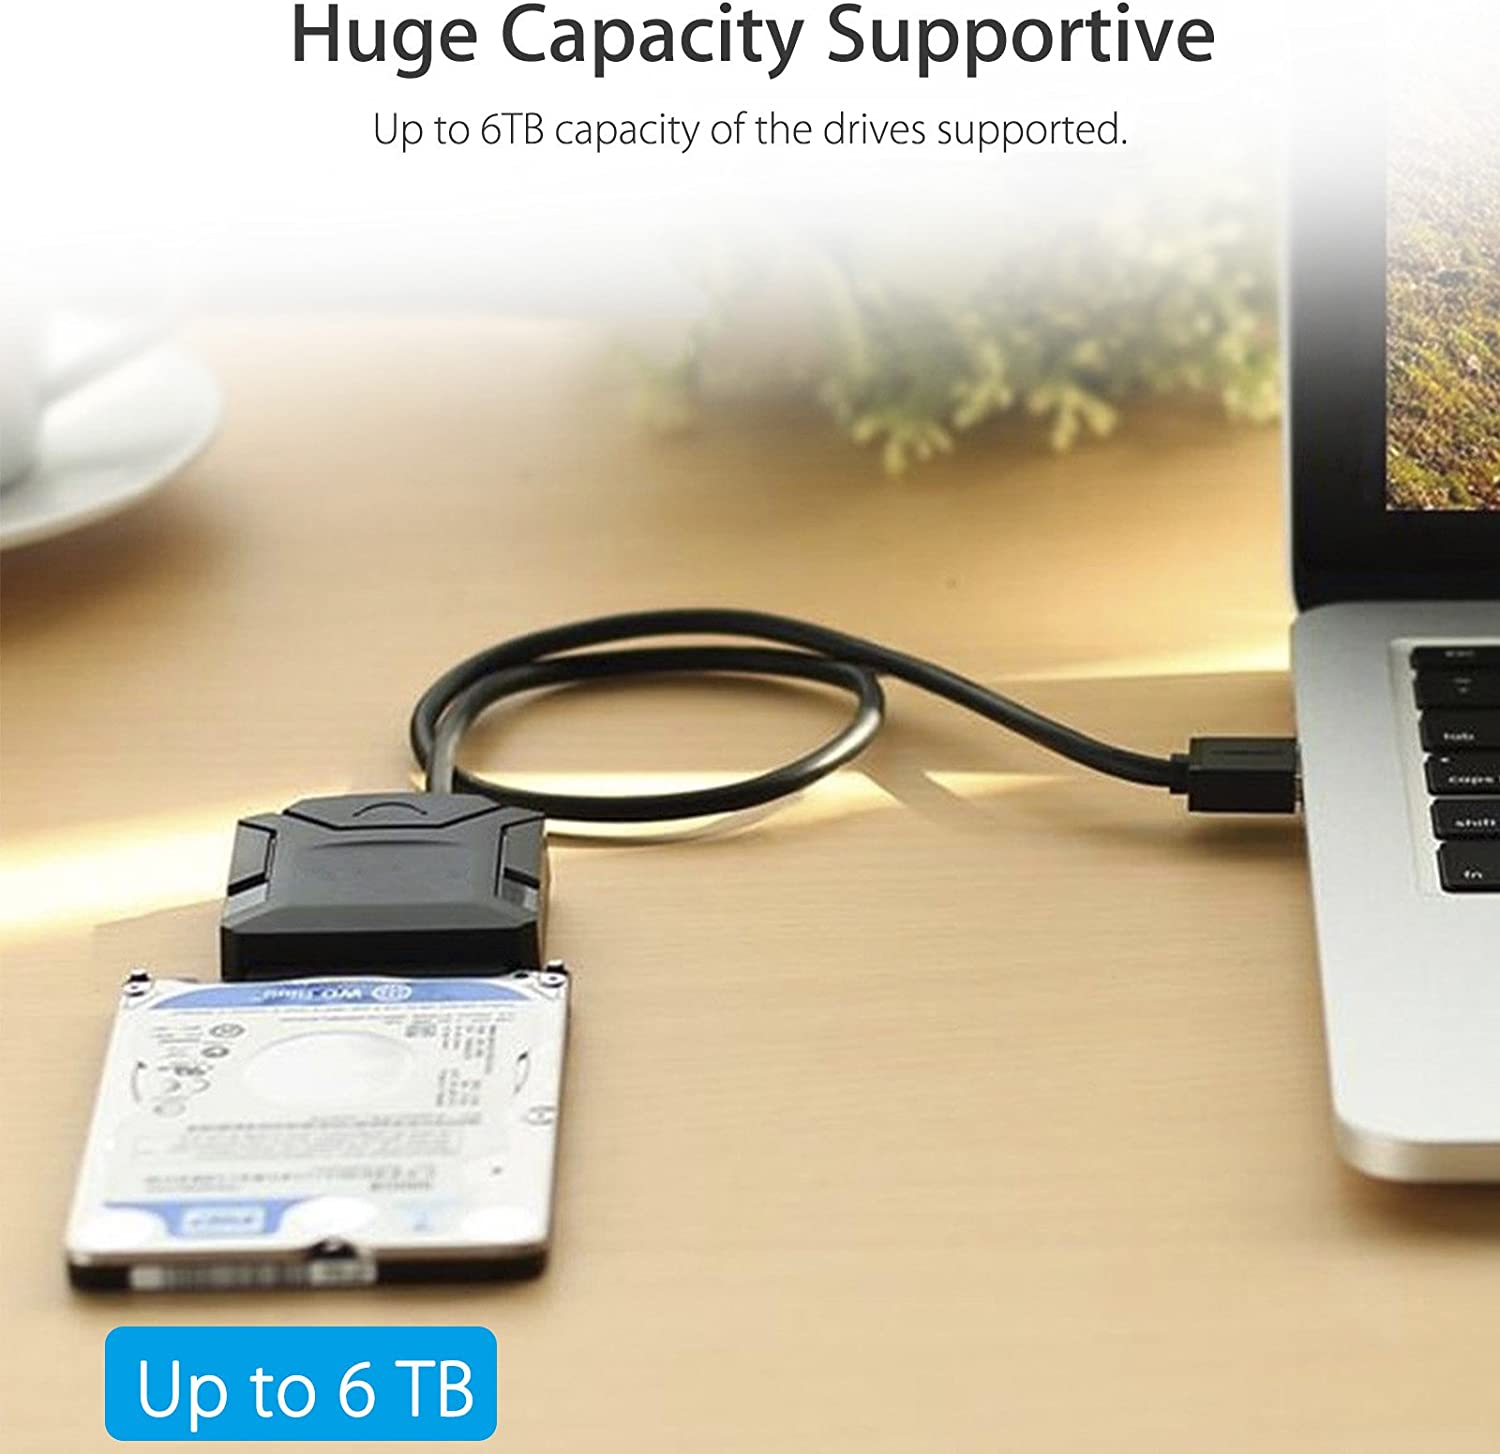 EEEkit USB 3.0 to 2.5inch SATA Cable HDD SSD Hard Drive Adapter Cable with UASP Converter for Windows 98 2000 XP Vista 8 10 Mac OS